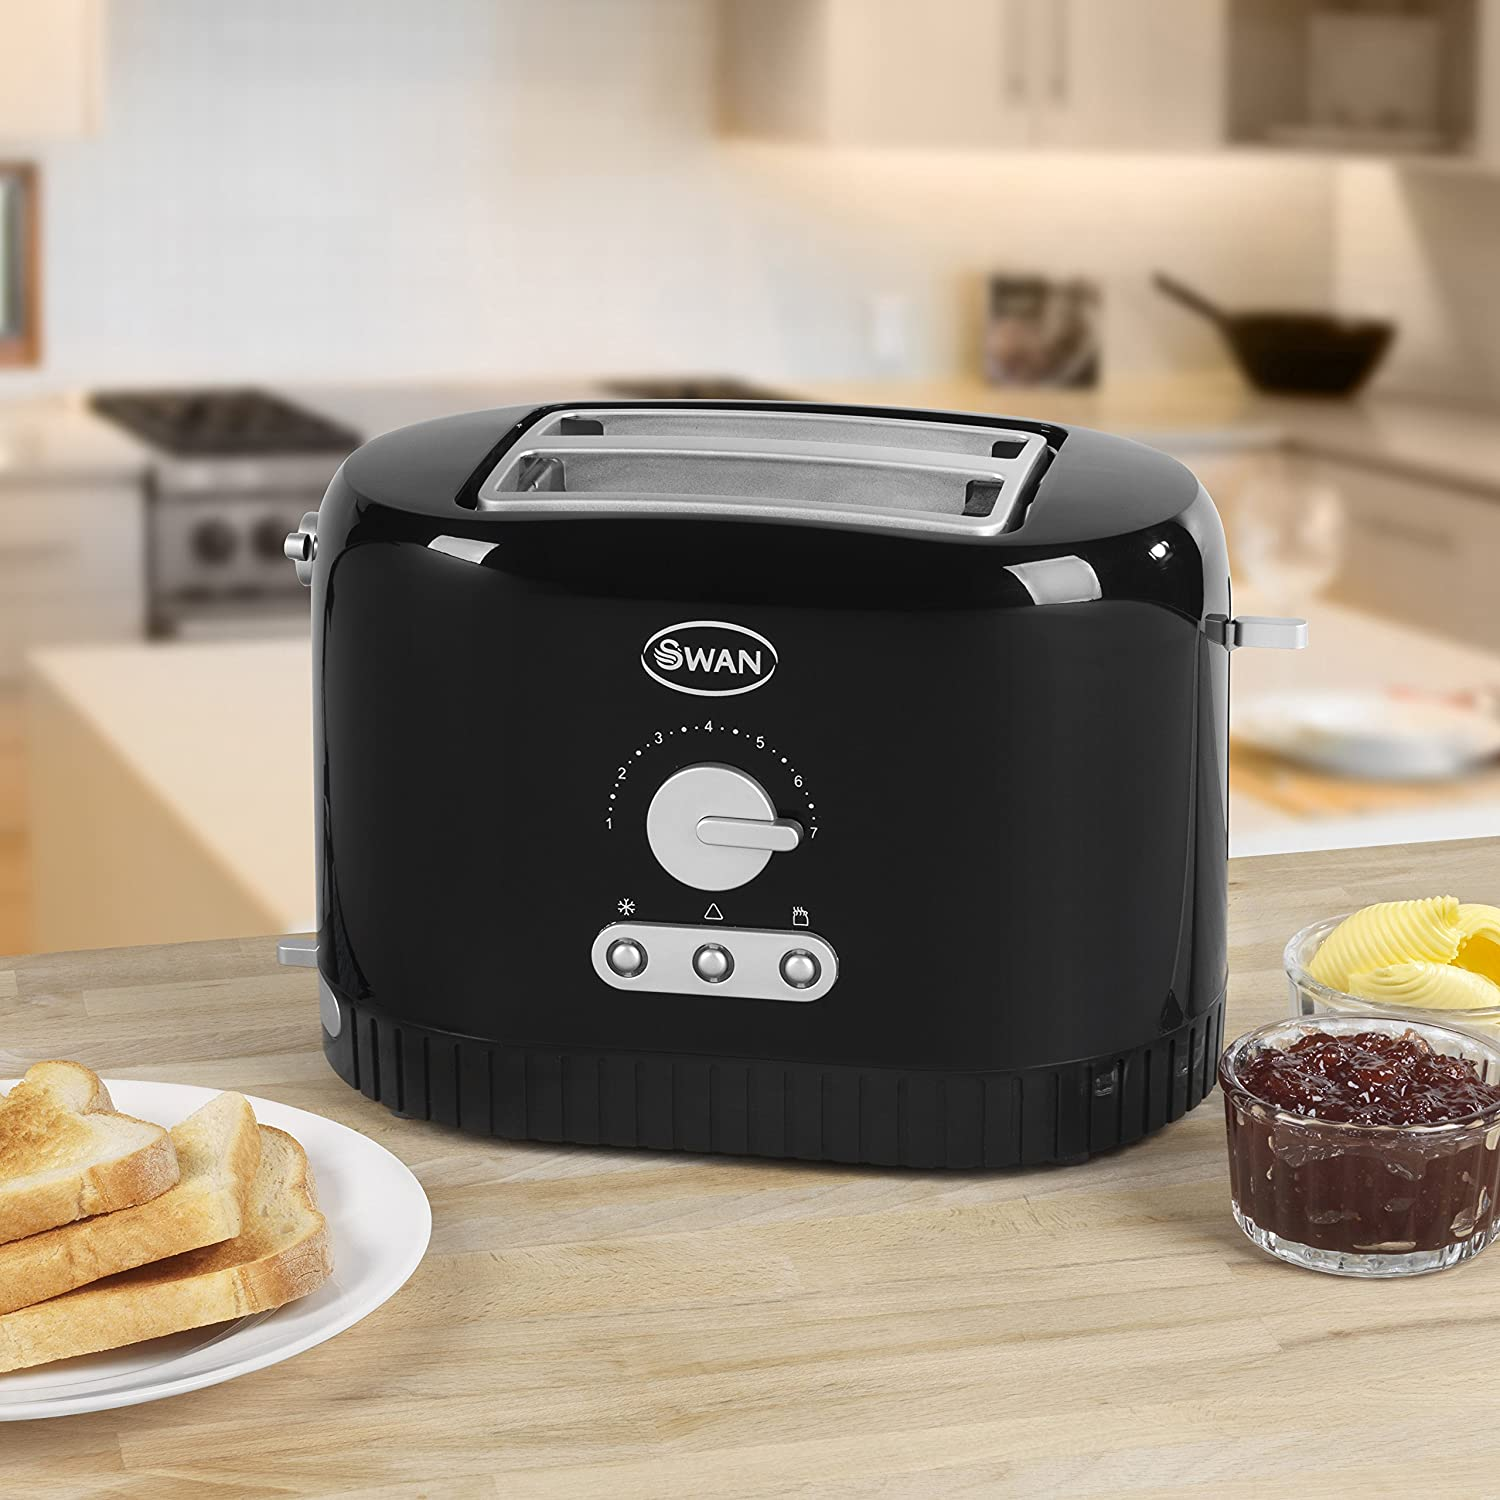 Swan 2-Slice Toaster - Black